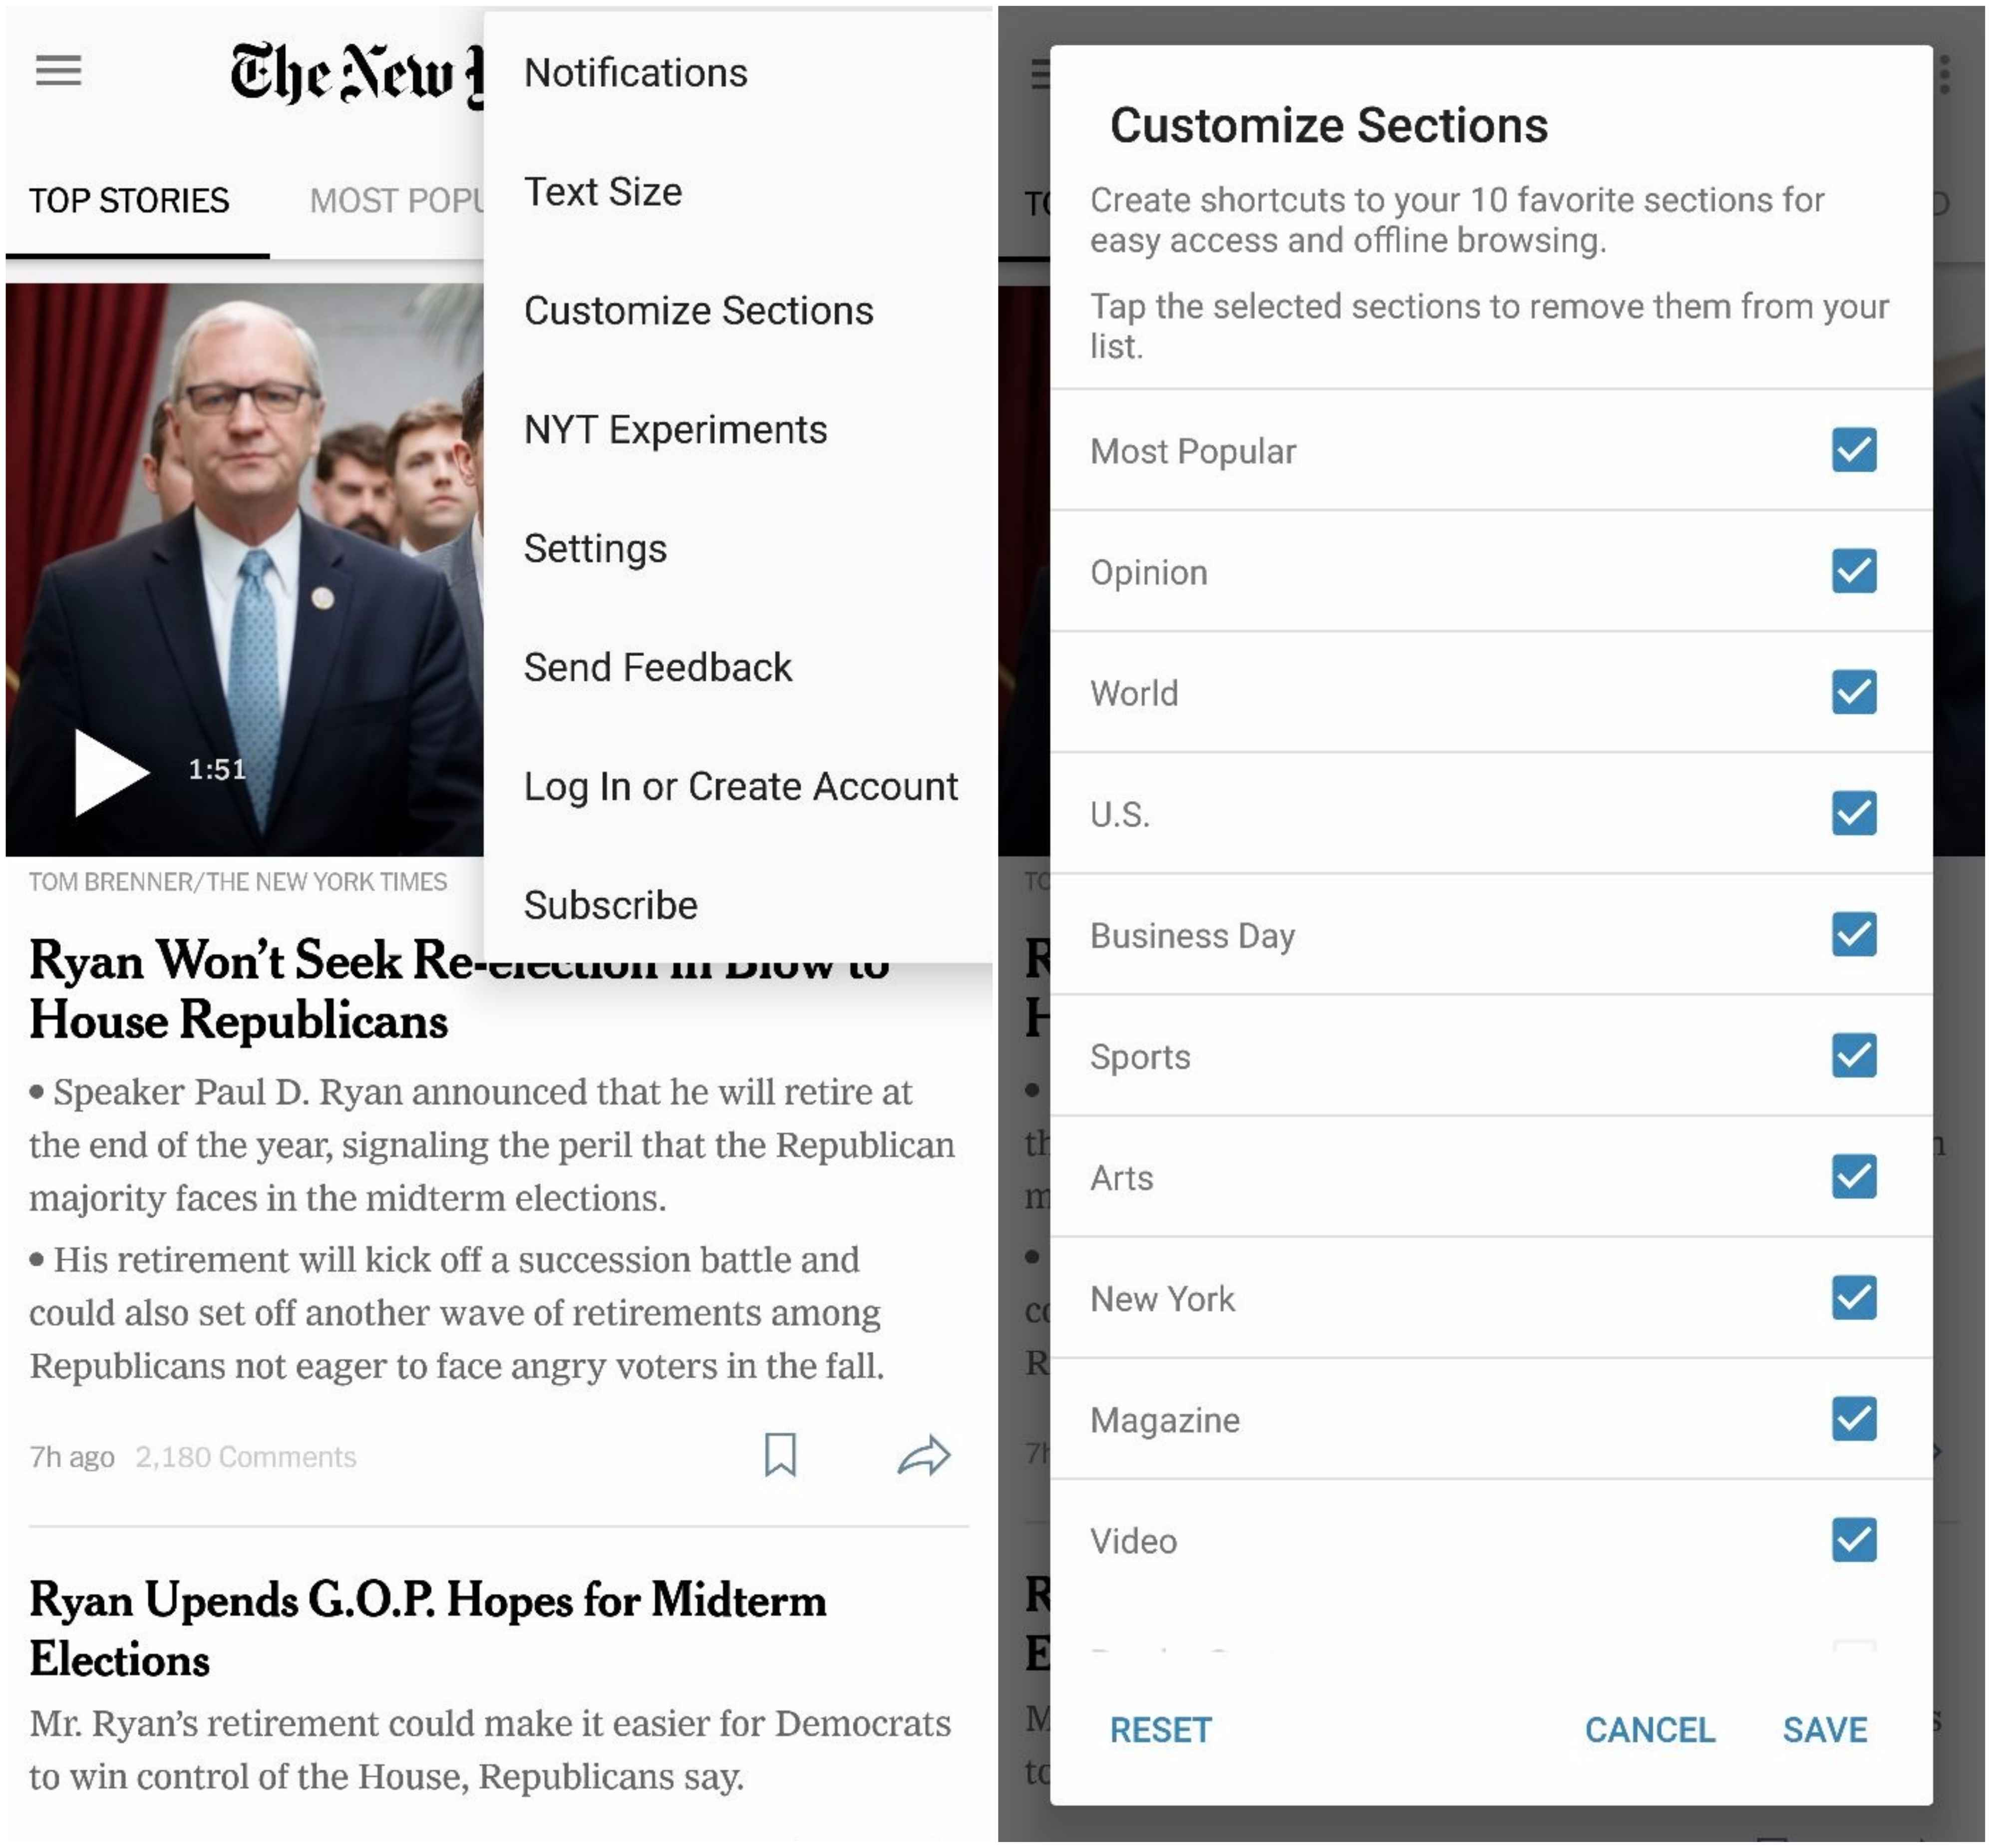 app engagement new york times personalization